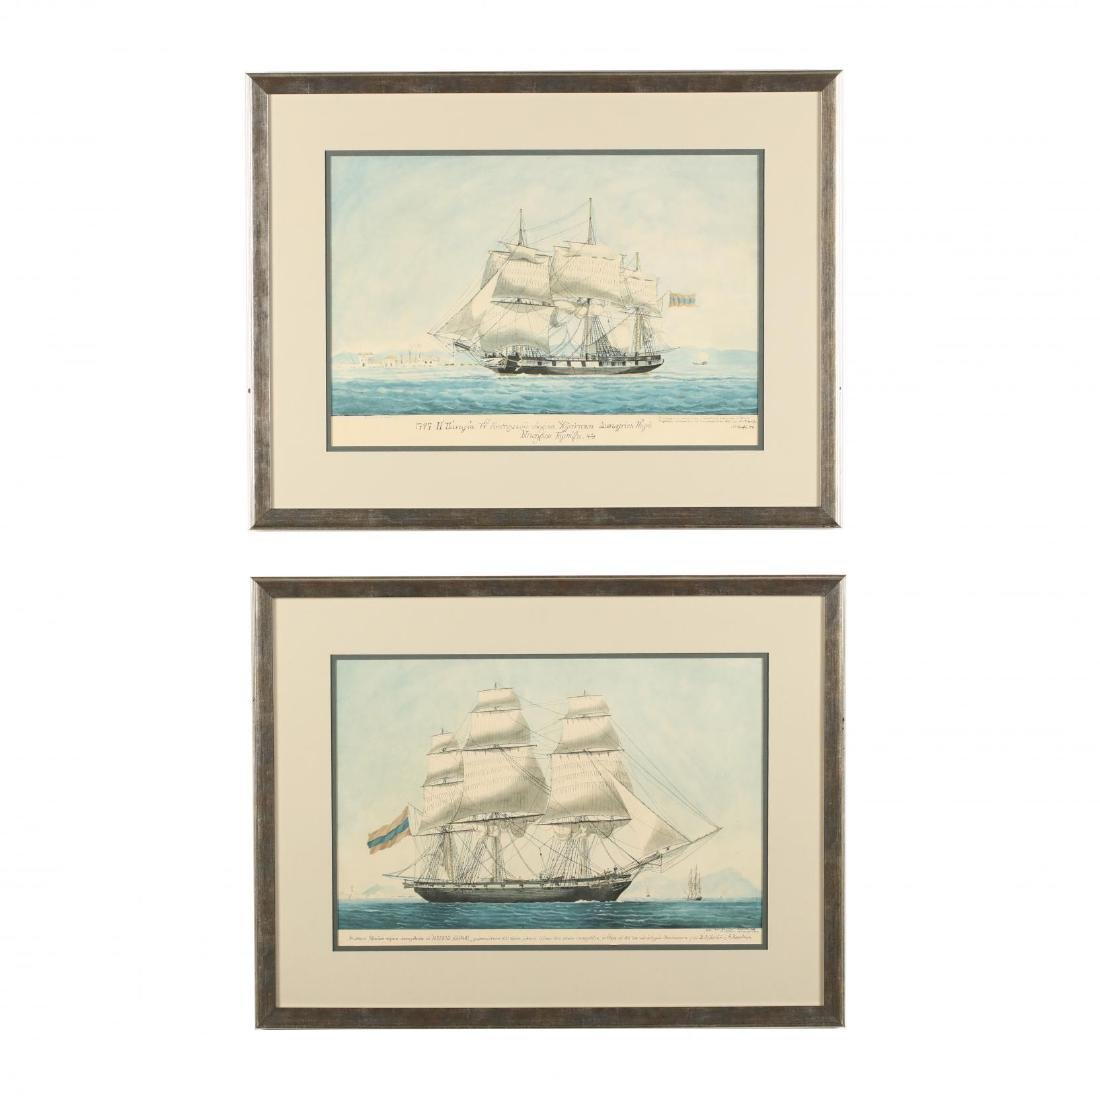 Pair of Prints Depicting Sailing Ships on the